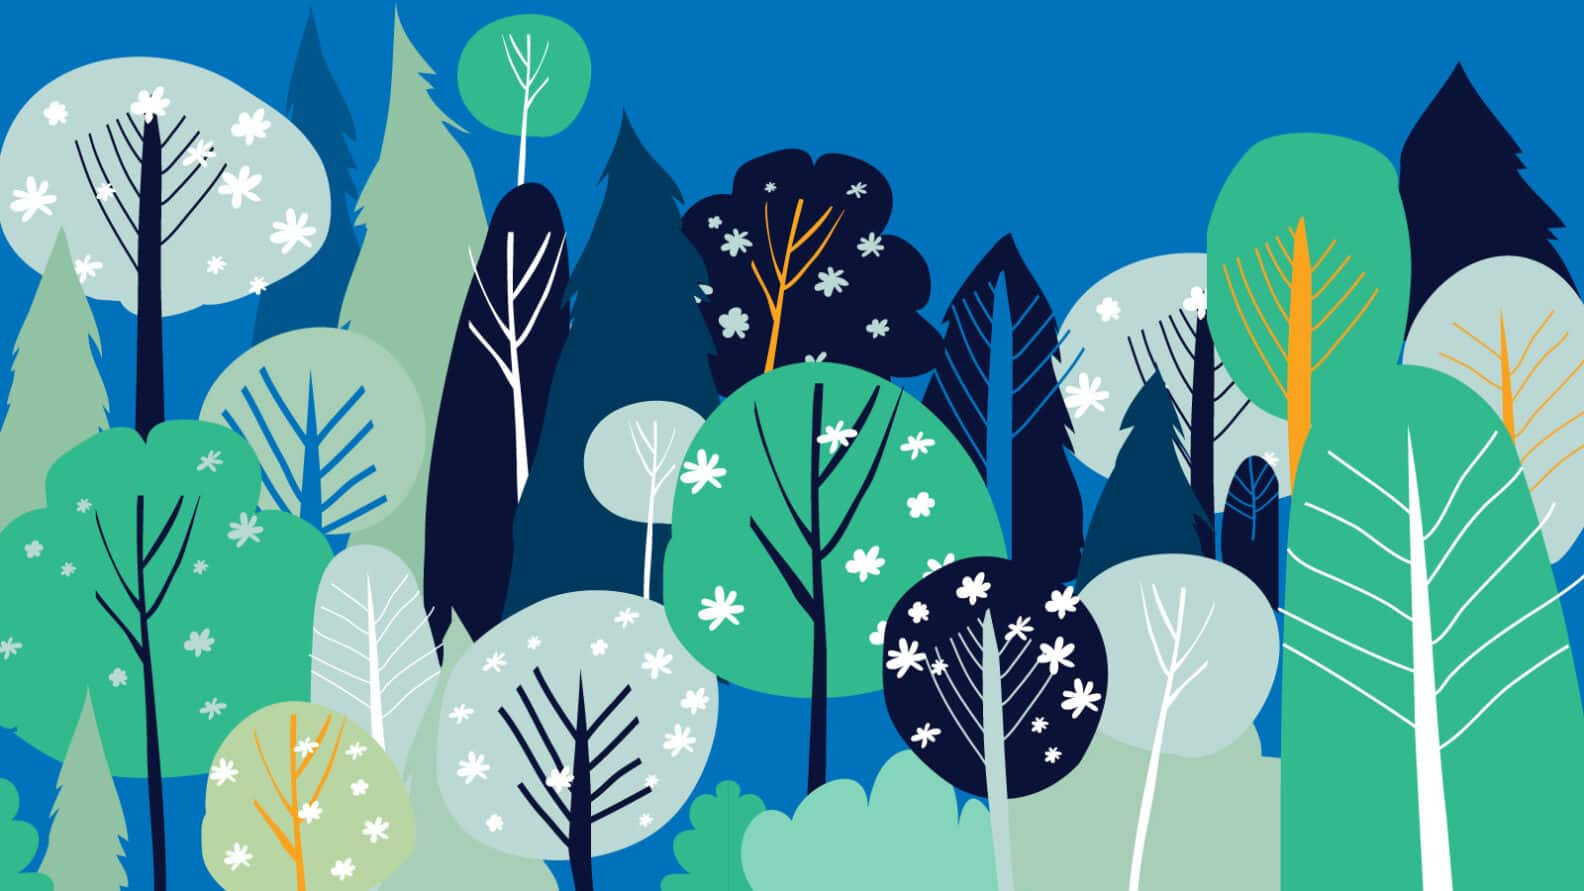 Illustration: forest and trees